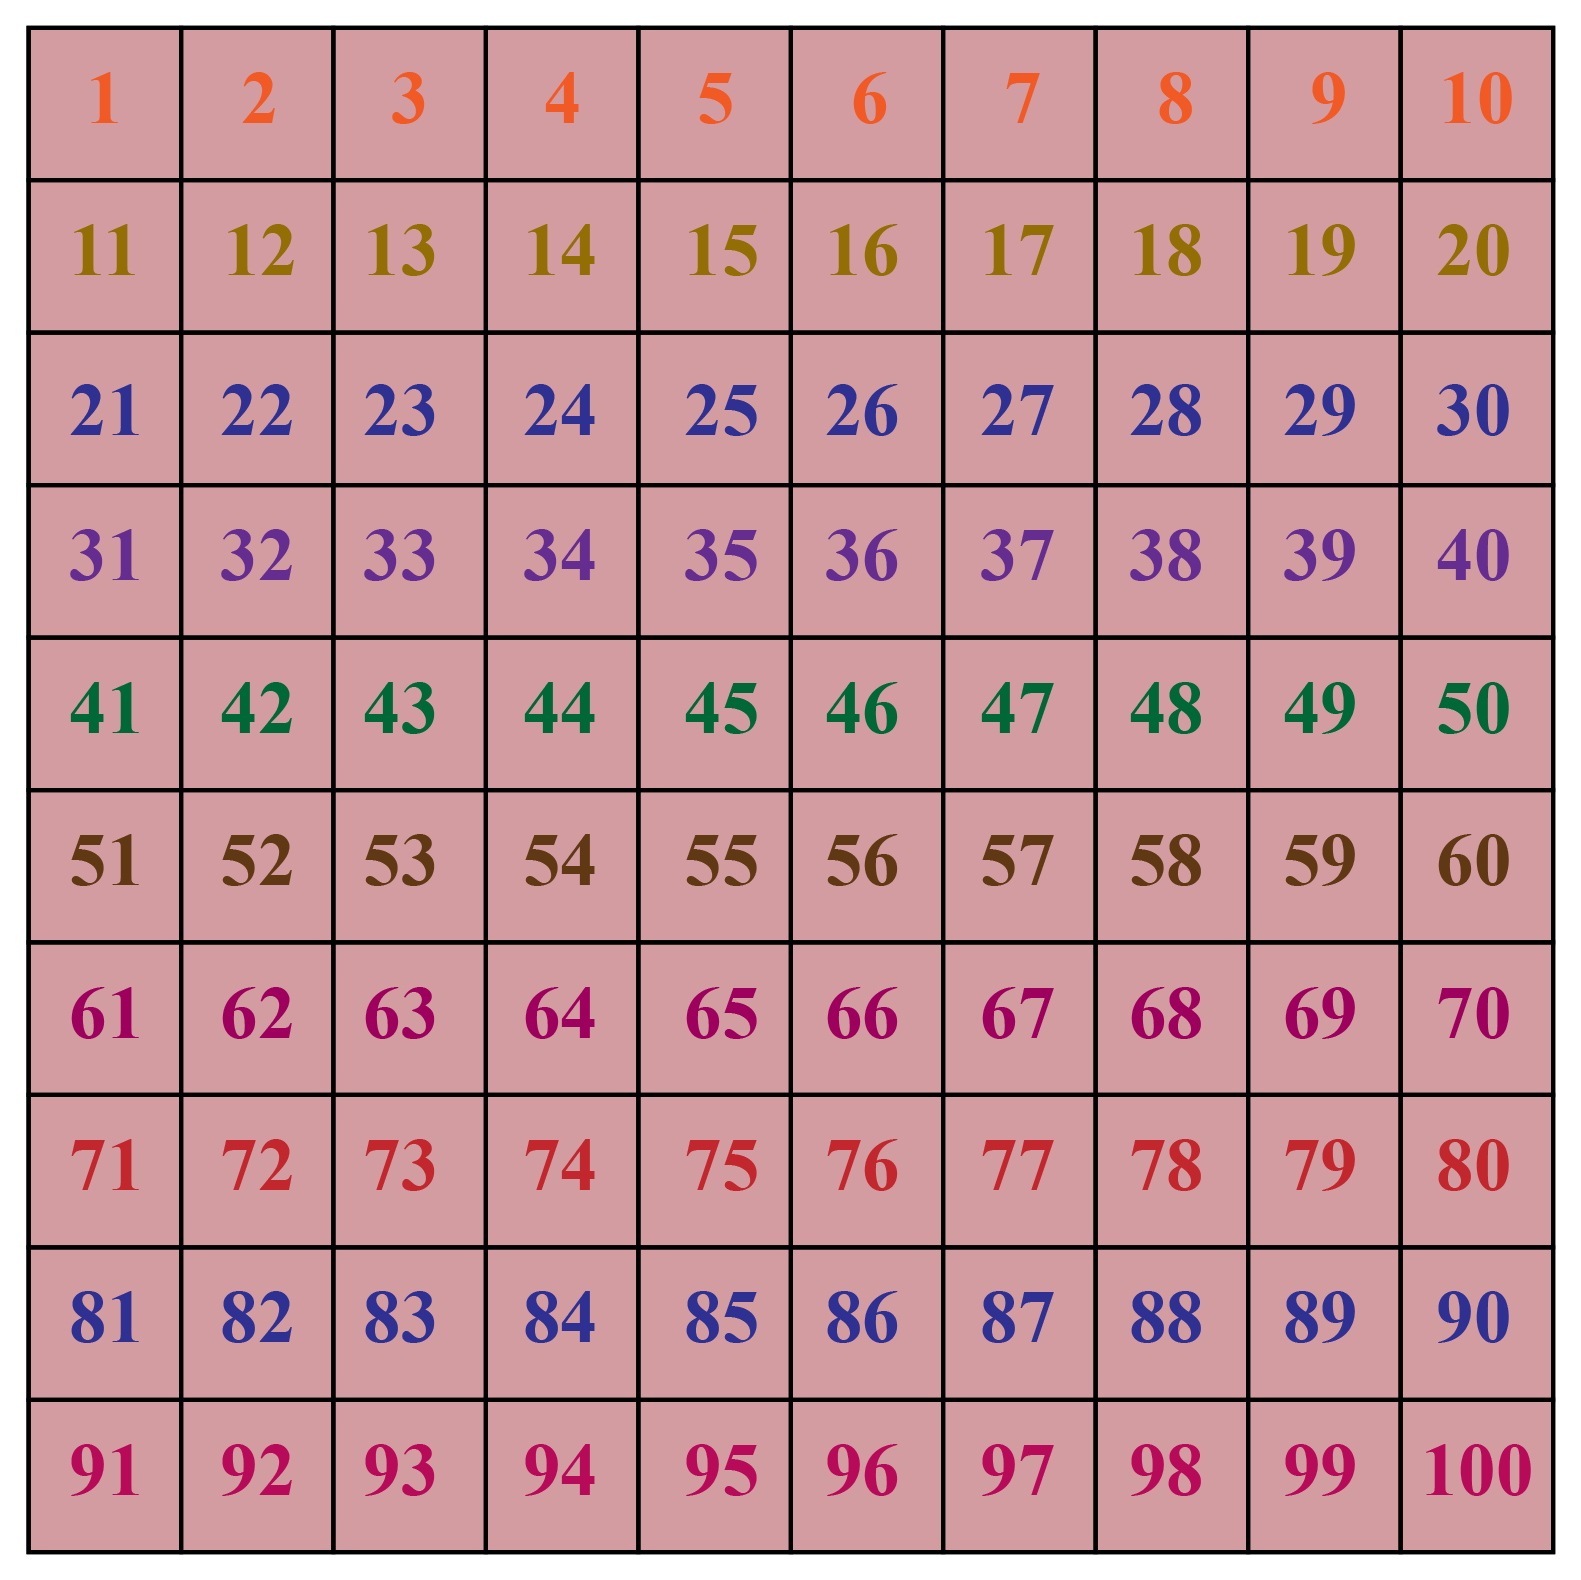 numbers from 1-100